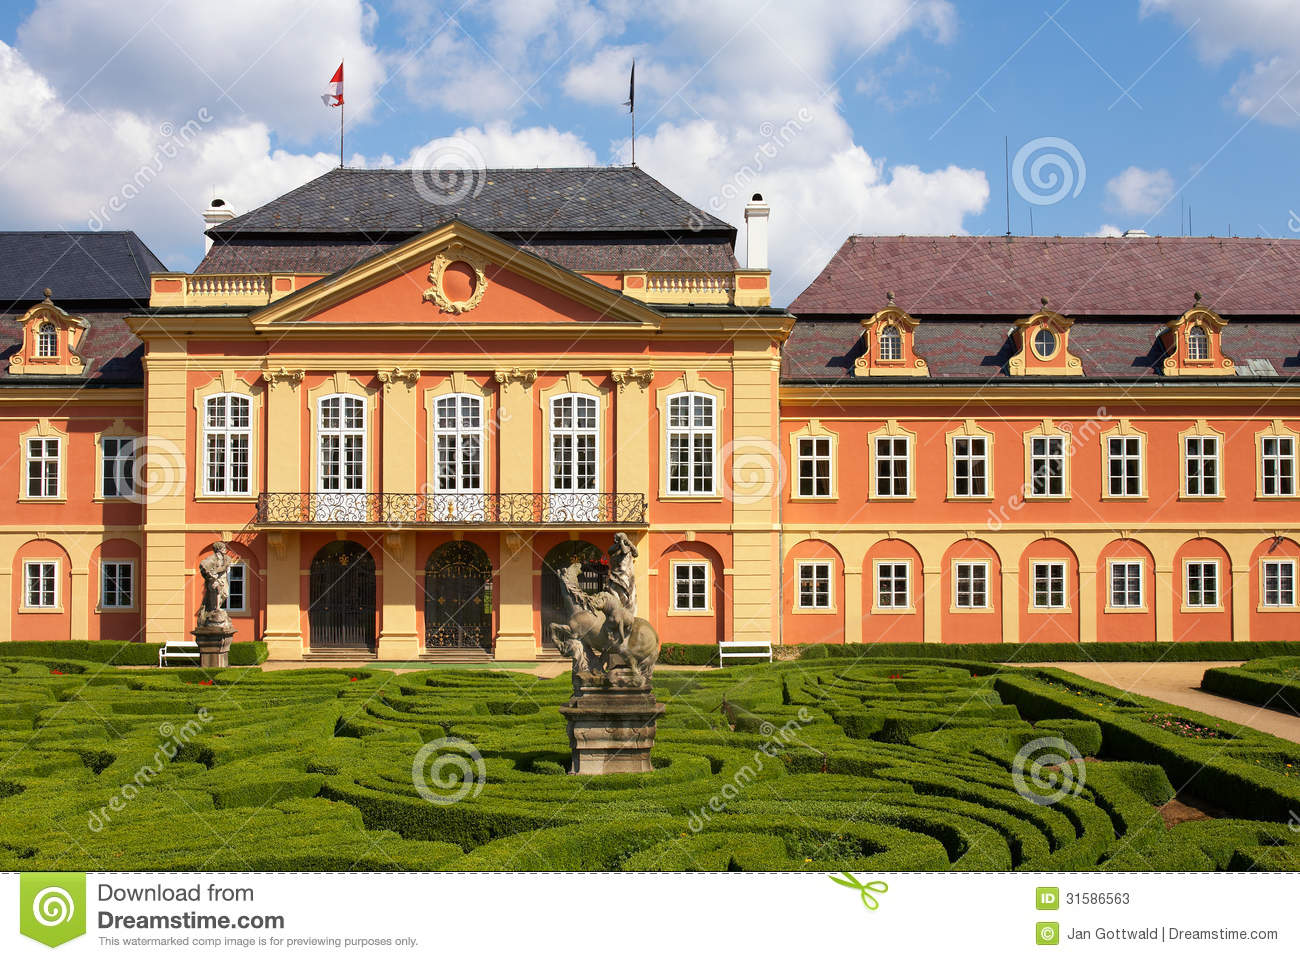 Dobris chateau stock image  Image of architecture, plant